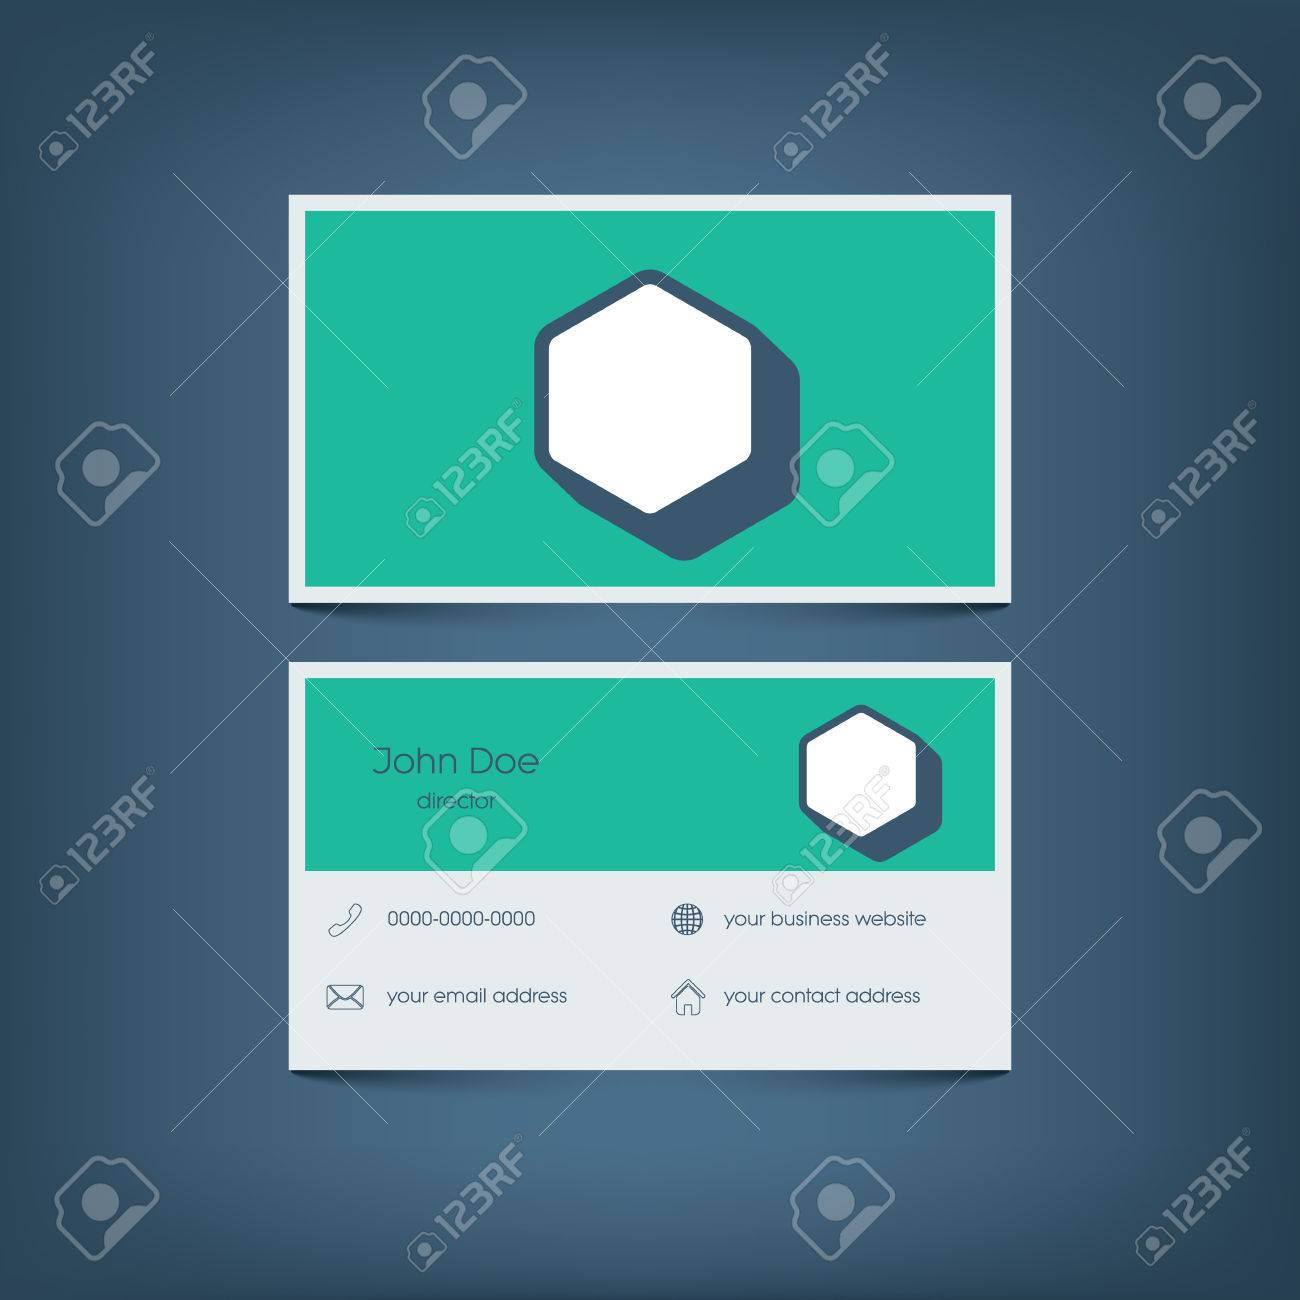 Modern flat design business card template graphic user interface modern flat design business card template graphic user interface with line icons for website reheart Images